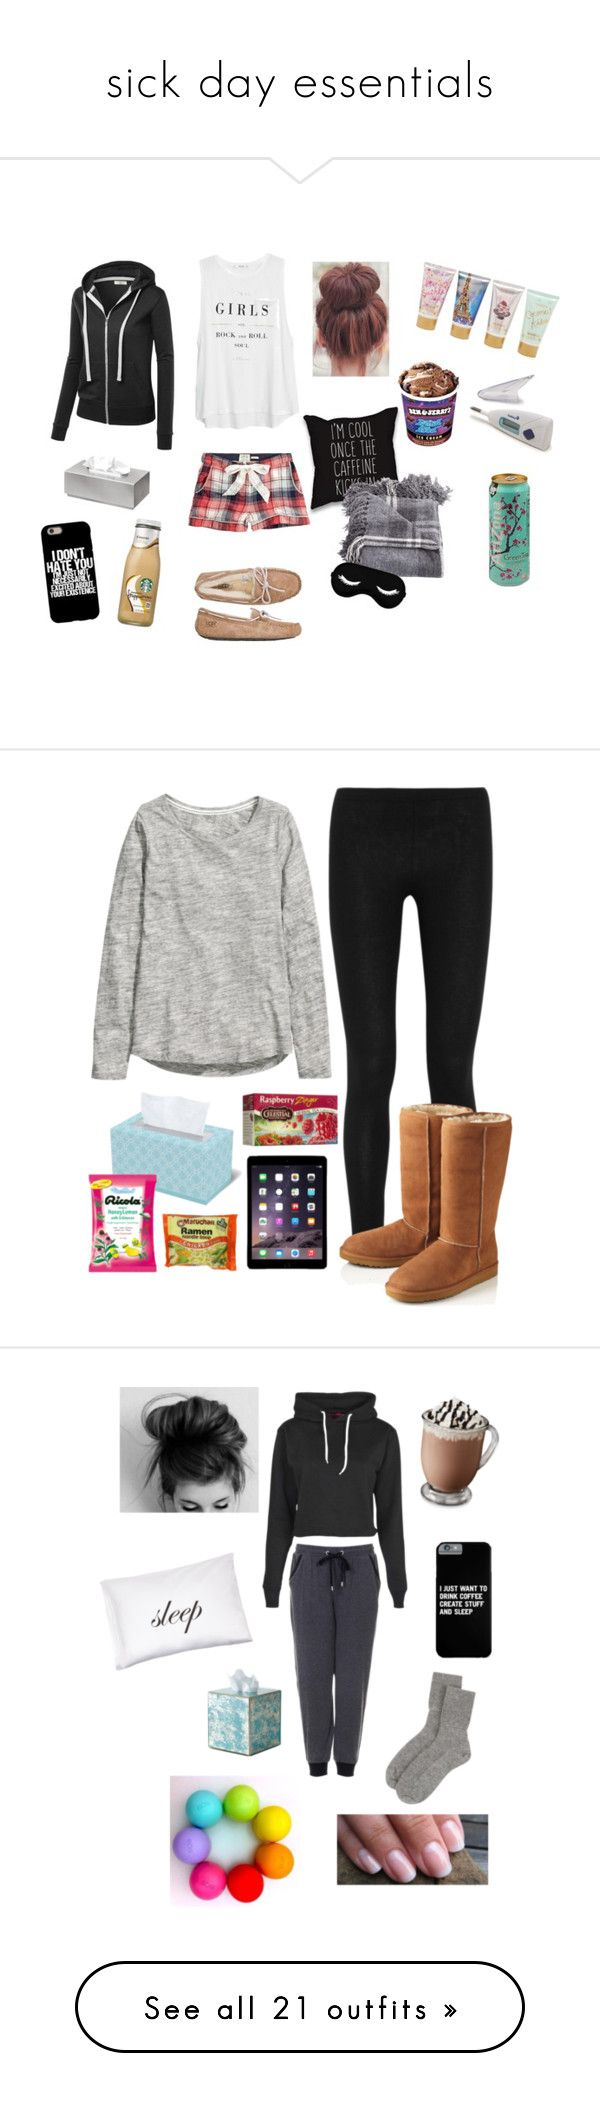 """sick day essentials"" by jillian07 ❤ liked on Polyvore featuring Fat Face, MANGO, UGG Australia, blomus, Forever 21, Donna Karan, H&M, Celestial Seasonings, Topshop and Boohoo"